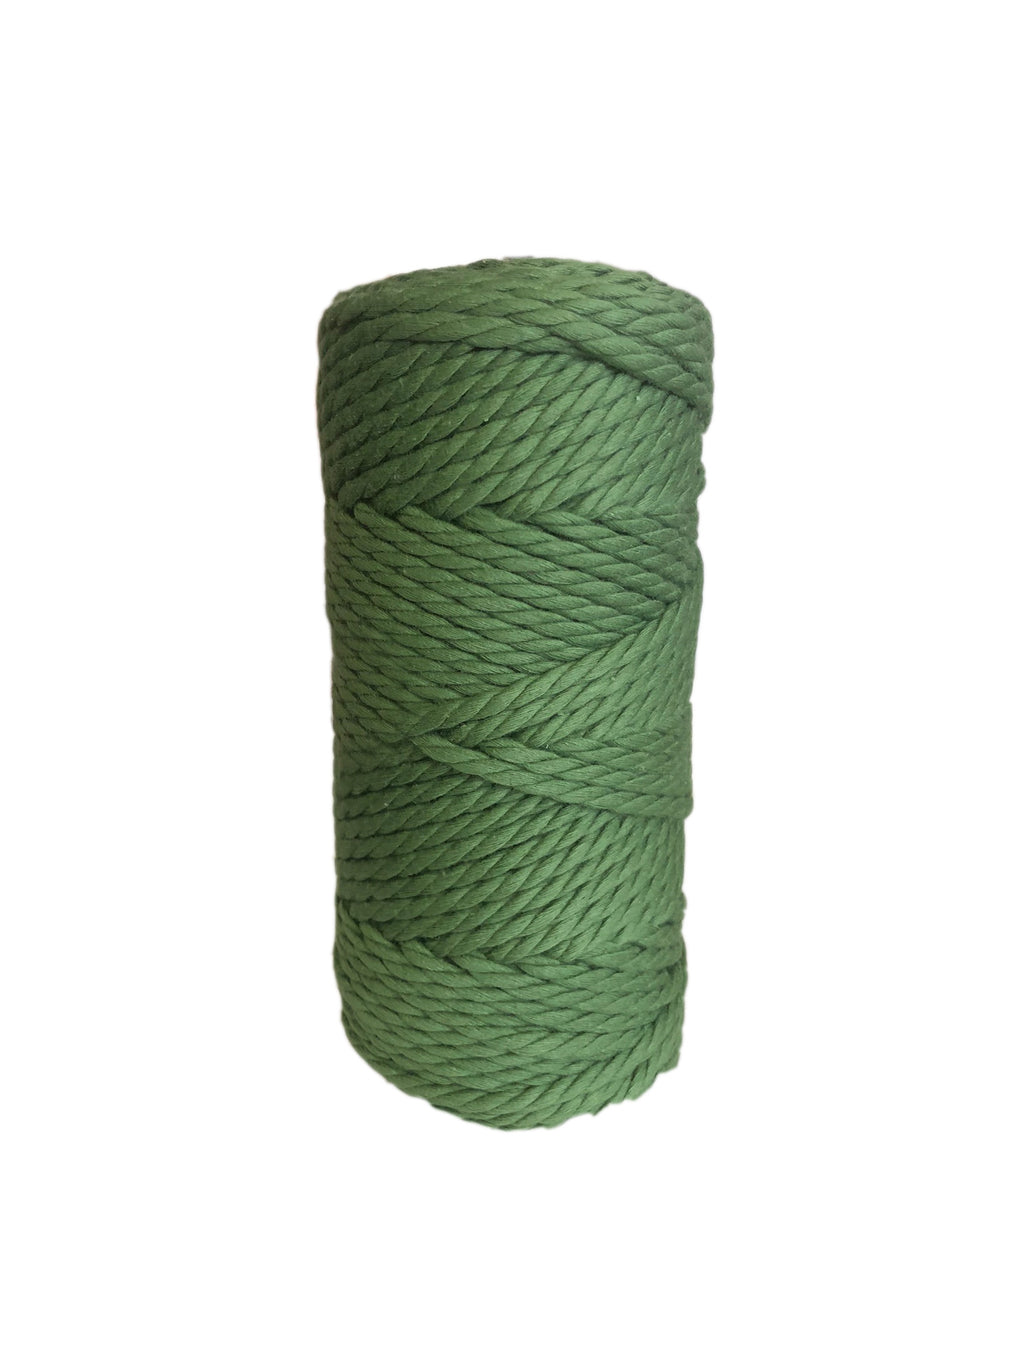 Luxury Macrame Cord ~ Fern Green Rope, 4mm